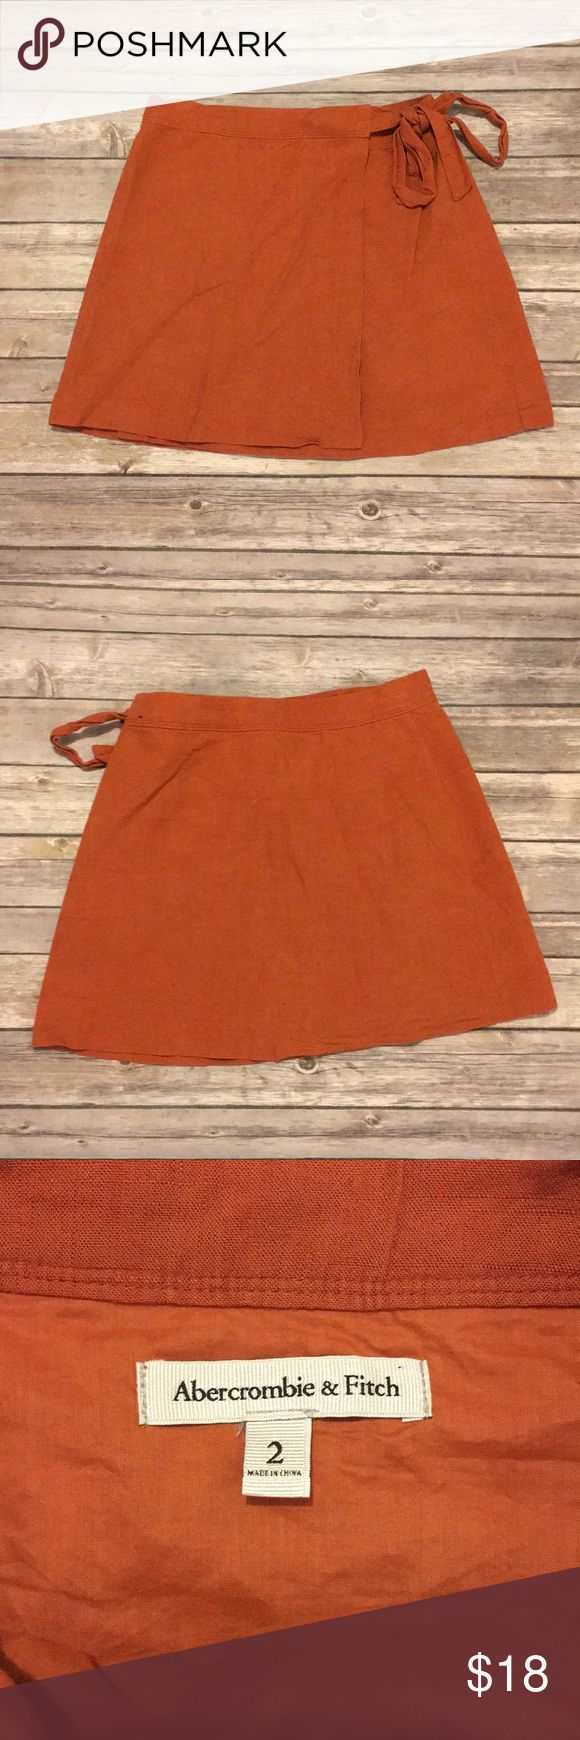 Burnt orange Abercrombie and Fitch wrap skirt Size 2. In excellent used condition. The button on the inside of skirt is hanging on by a thread but is totally fixable Abercrombie & Fitch Skirts